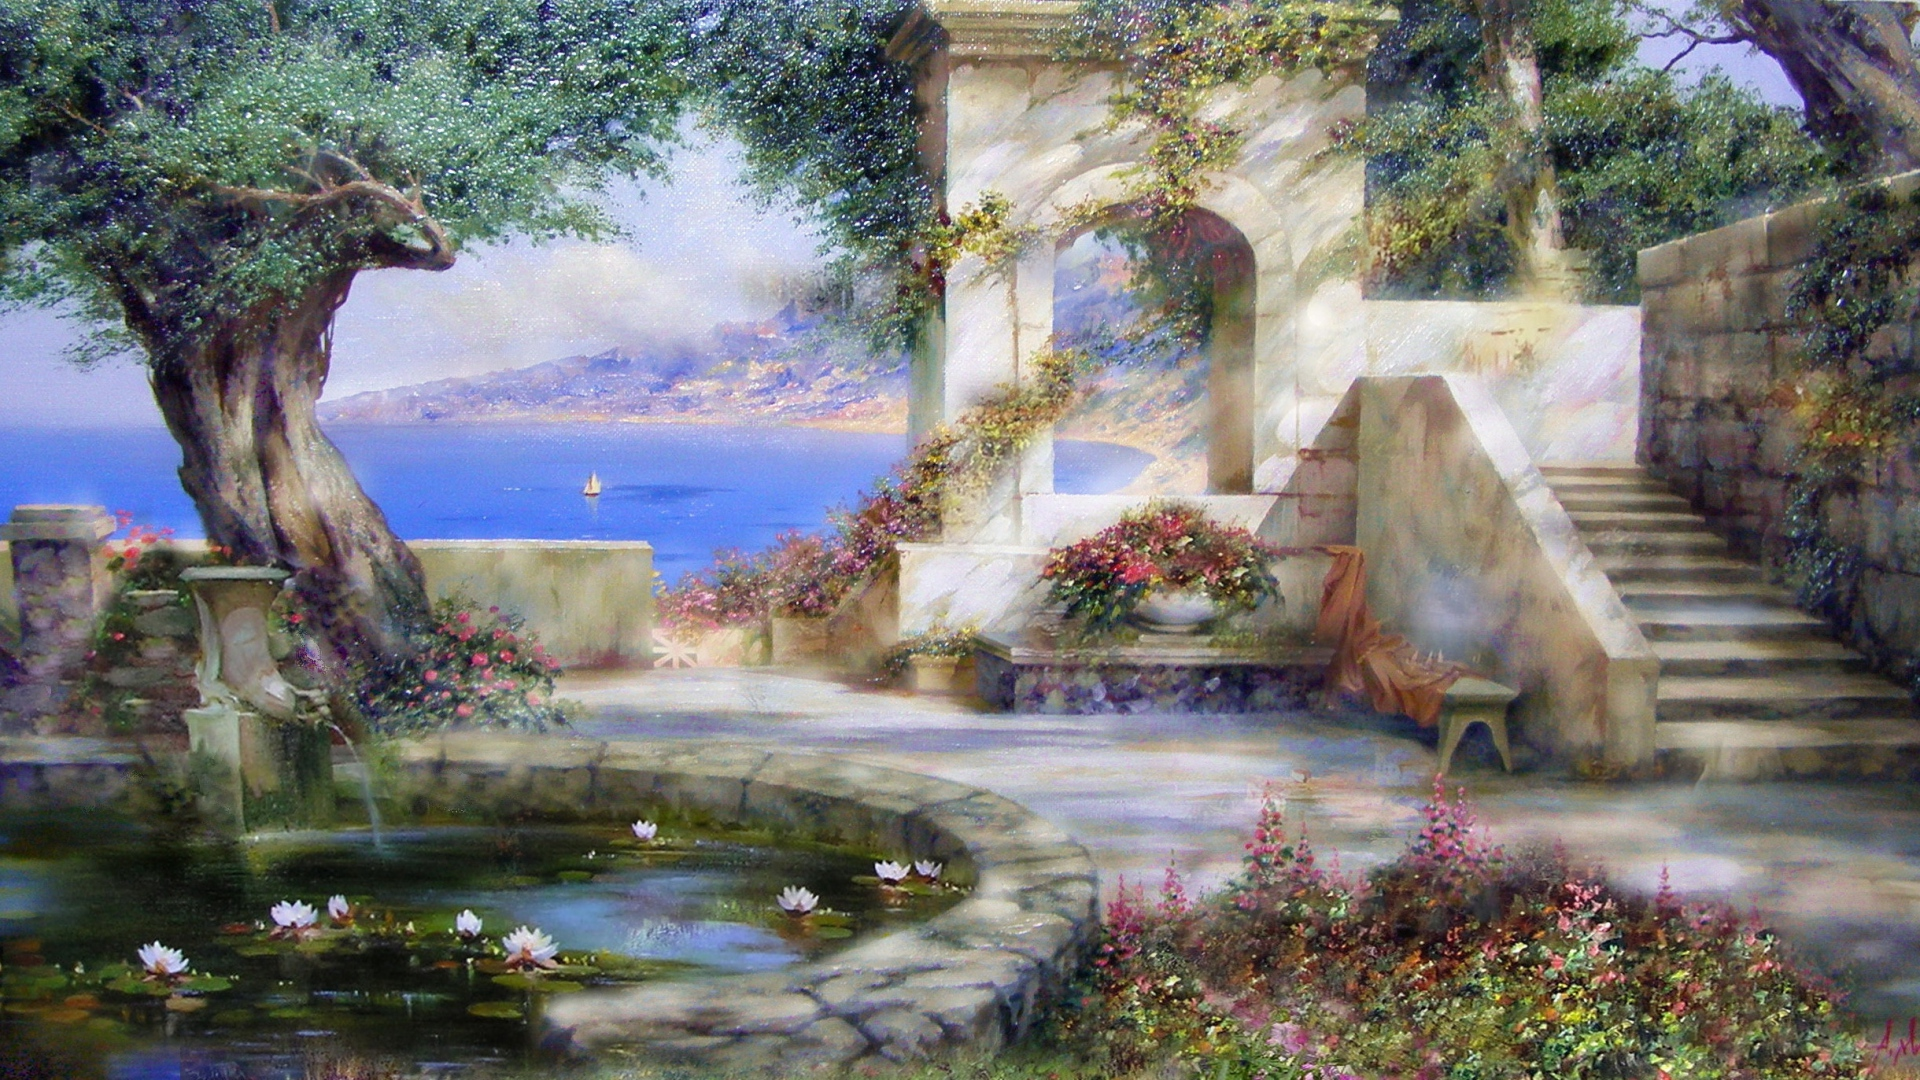 Download Wallpaper 1920x1080 Painting Art Fountain